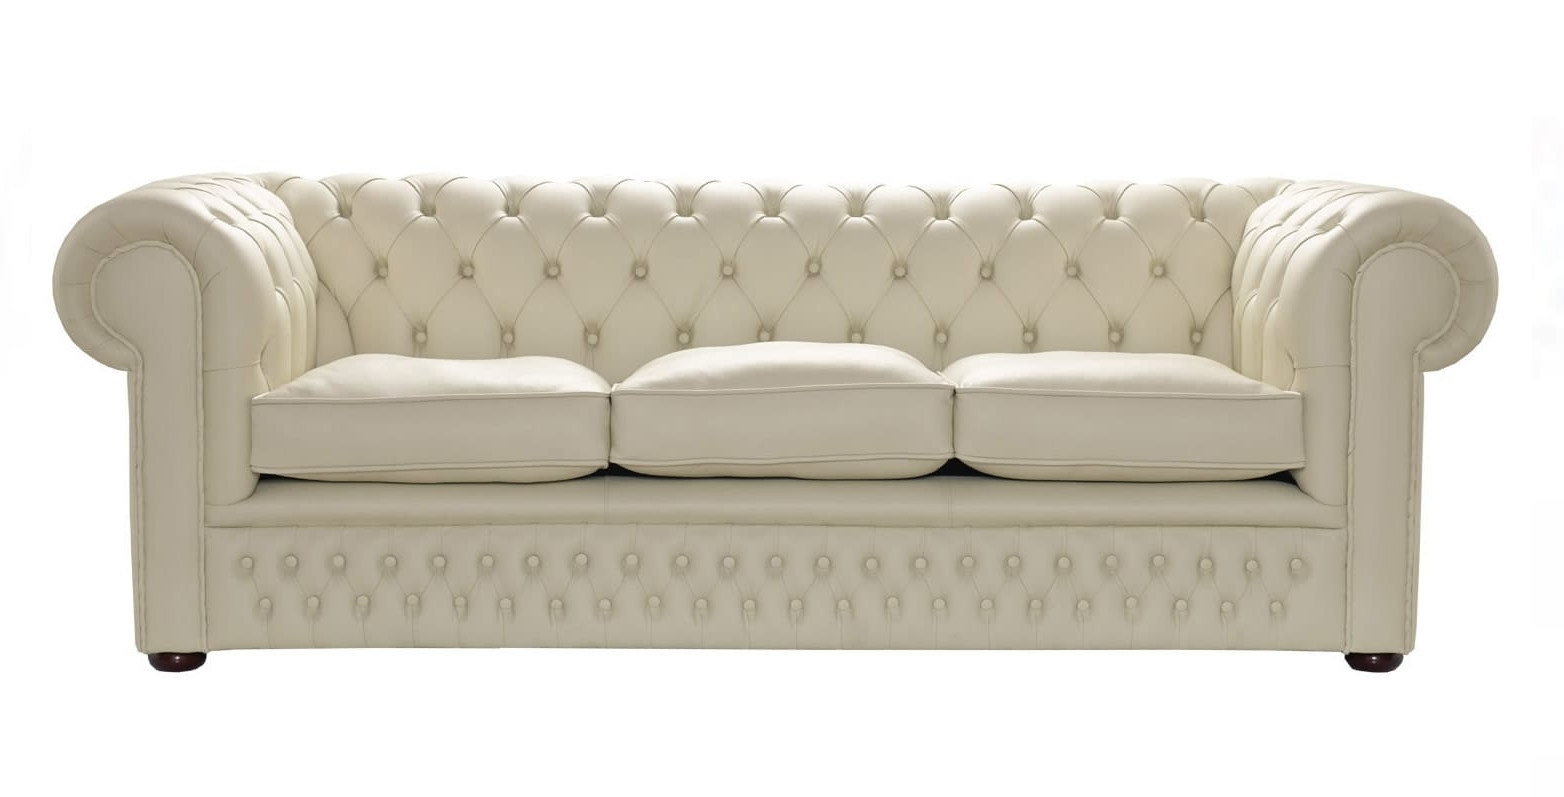 Leather Chesterfield Sofas Regarding Well Liked Cream Leather Chesterfield Sofa, Handcrafted In The Uk (View 5 of 20)